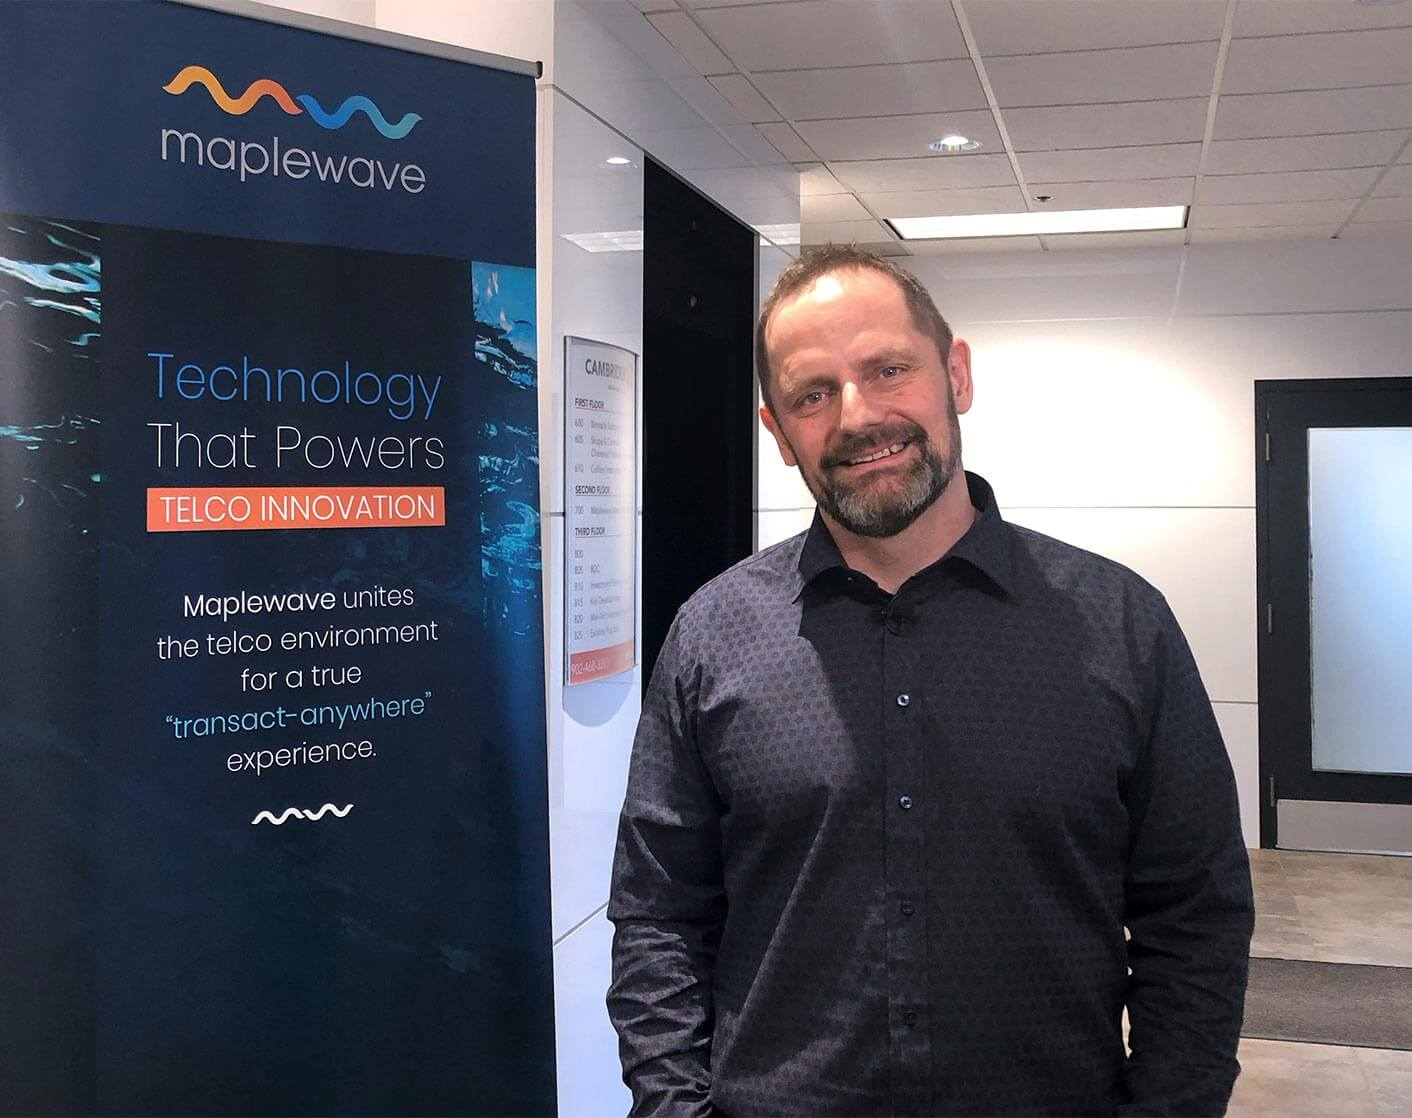 CEO of Maplewave Adam Baggs smiling to the camera in front of a Maplewave sign